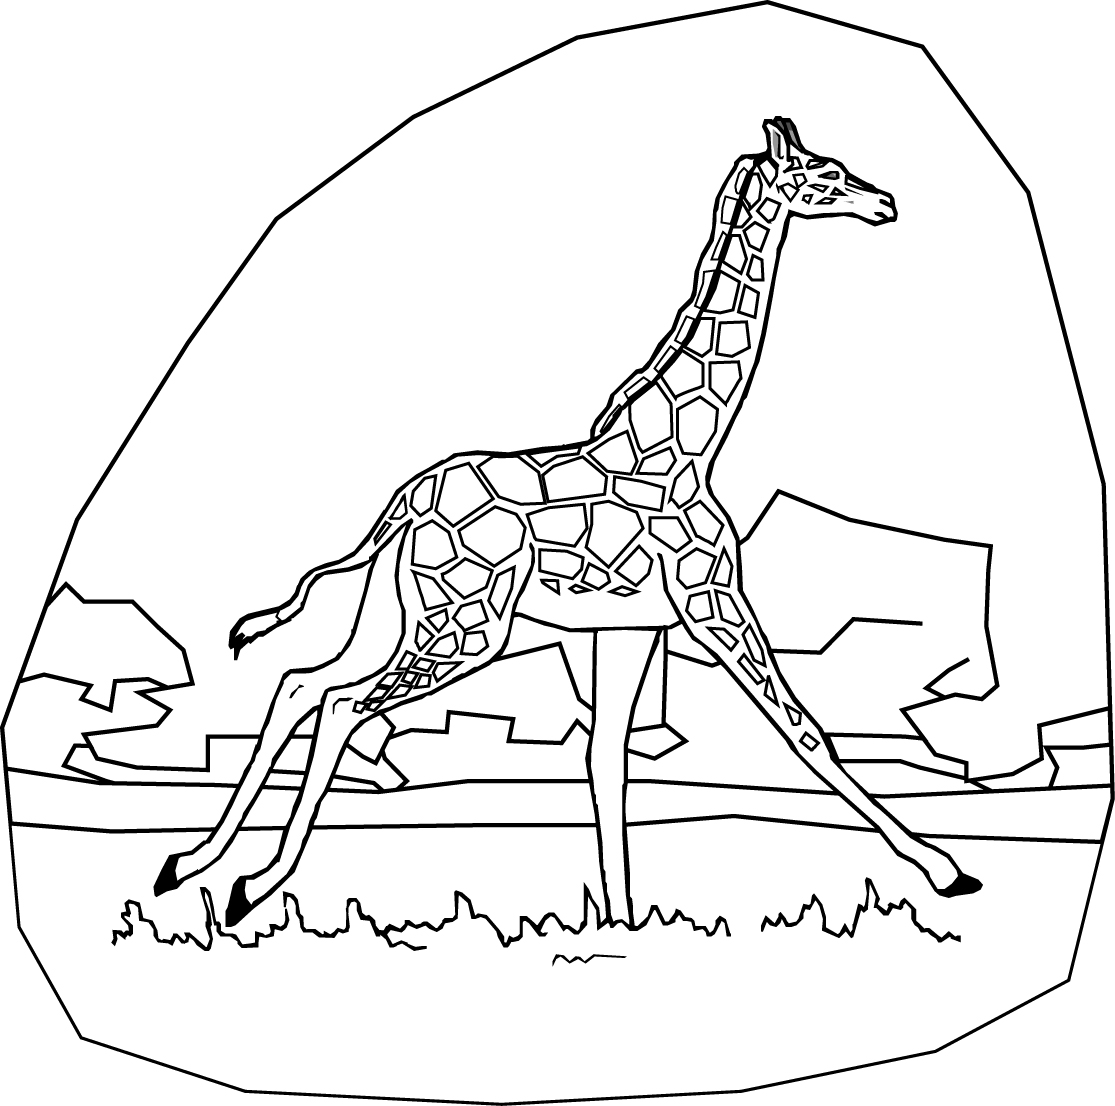 coloring pages giraffe soulmetalpodcast giraffe for coloring coloring pages giraffe